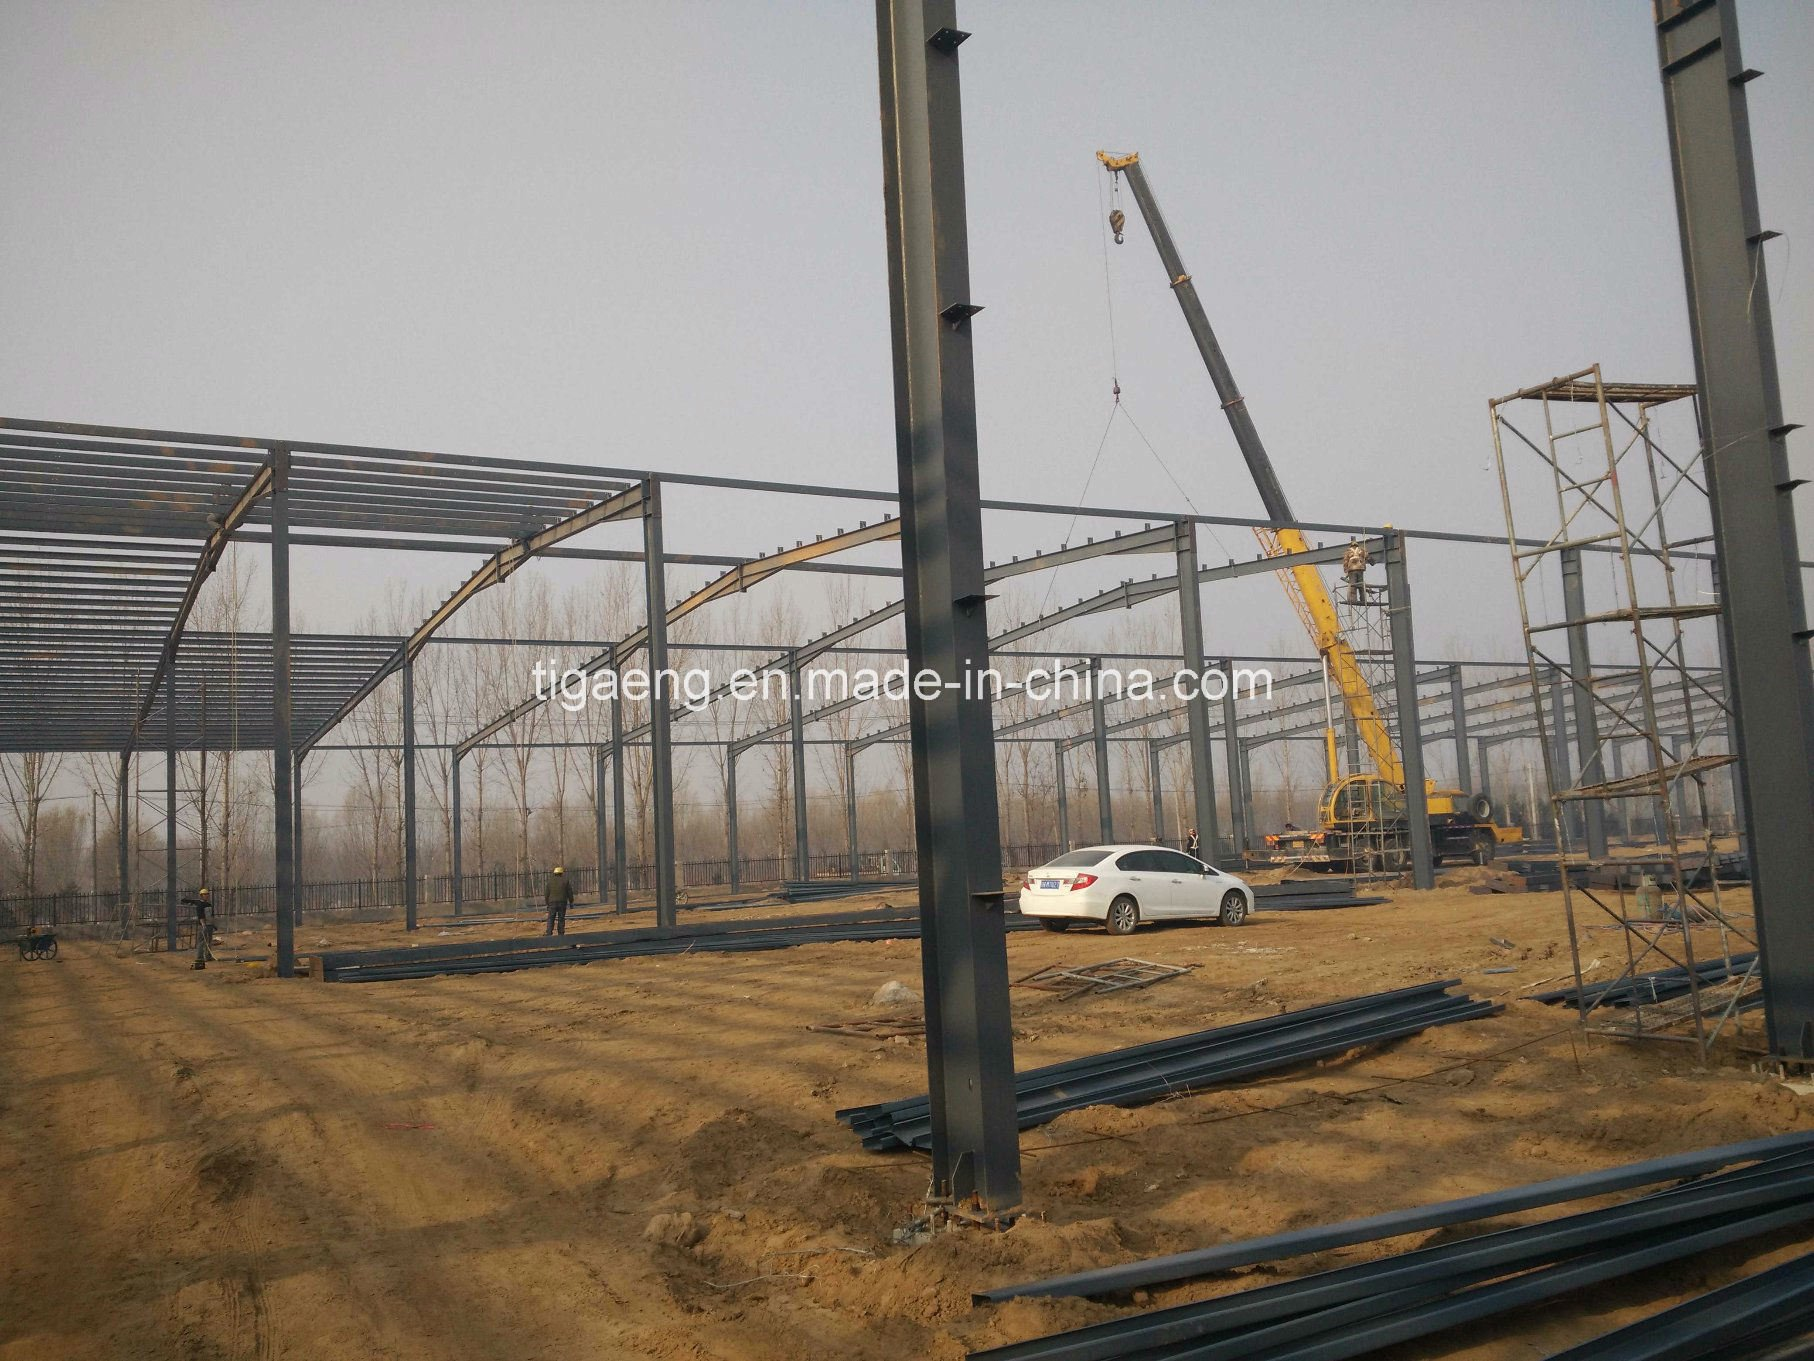 Prefabricated Steel Frame Warehouse/Steel Structure for Zambia in Africa